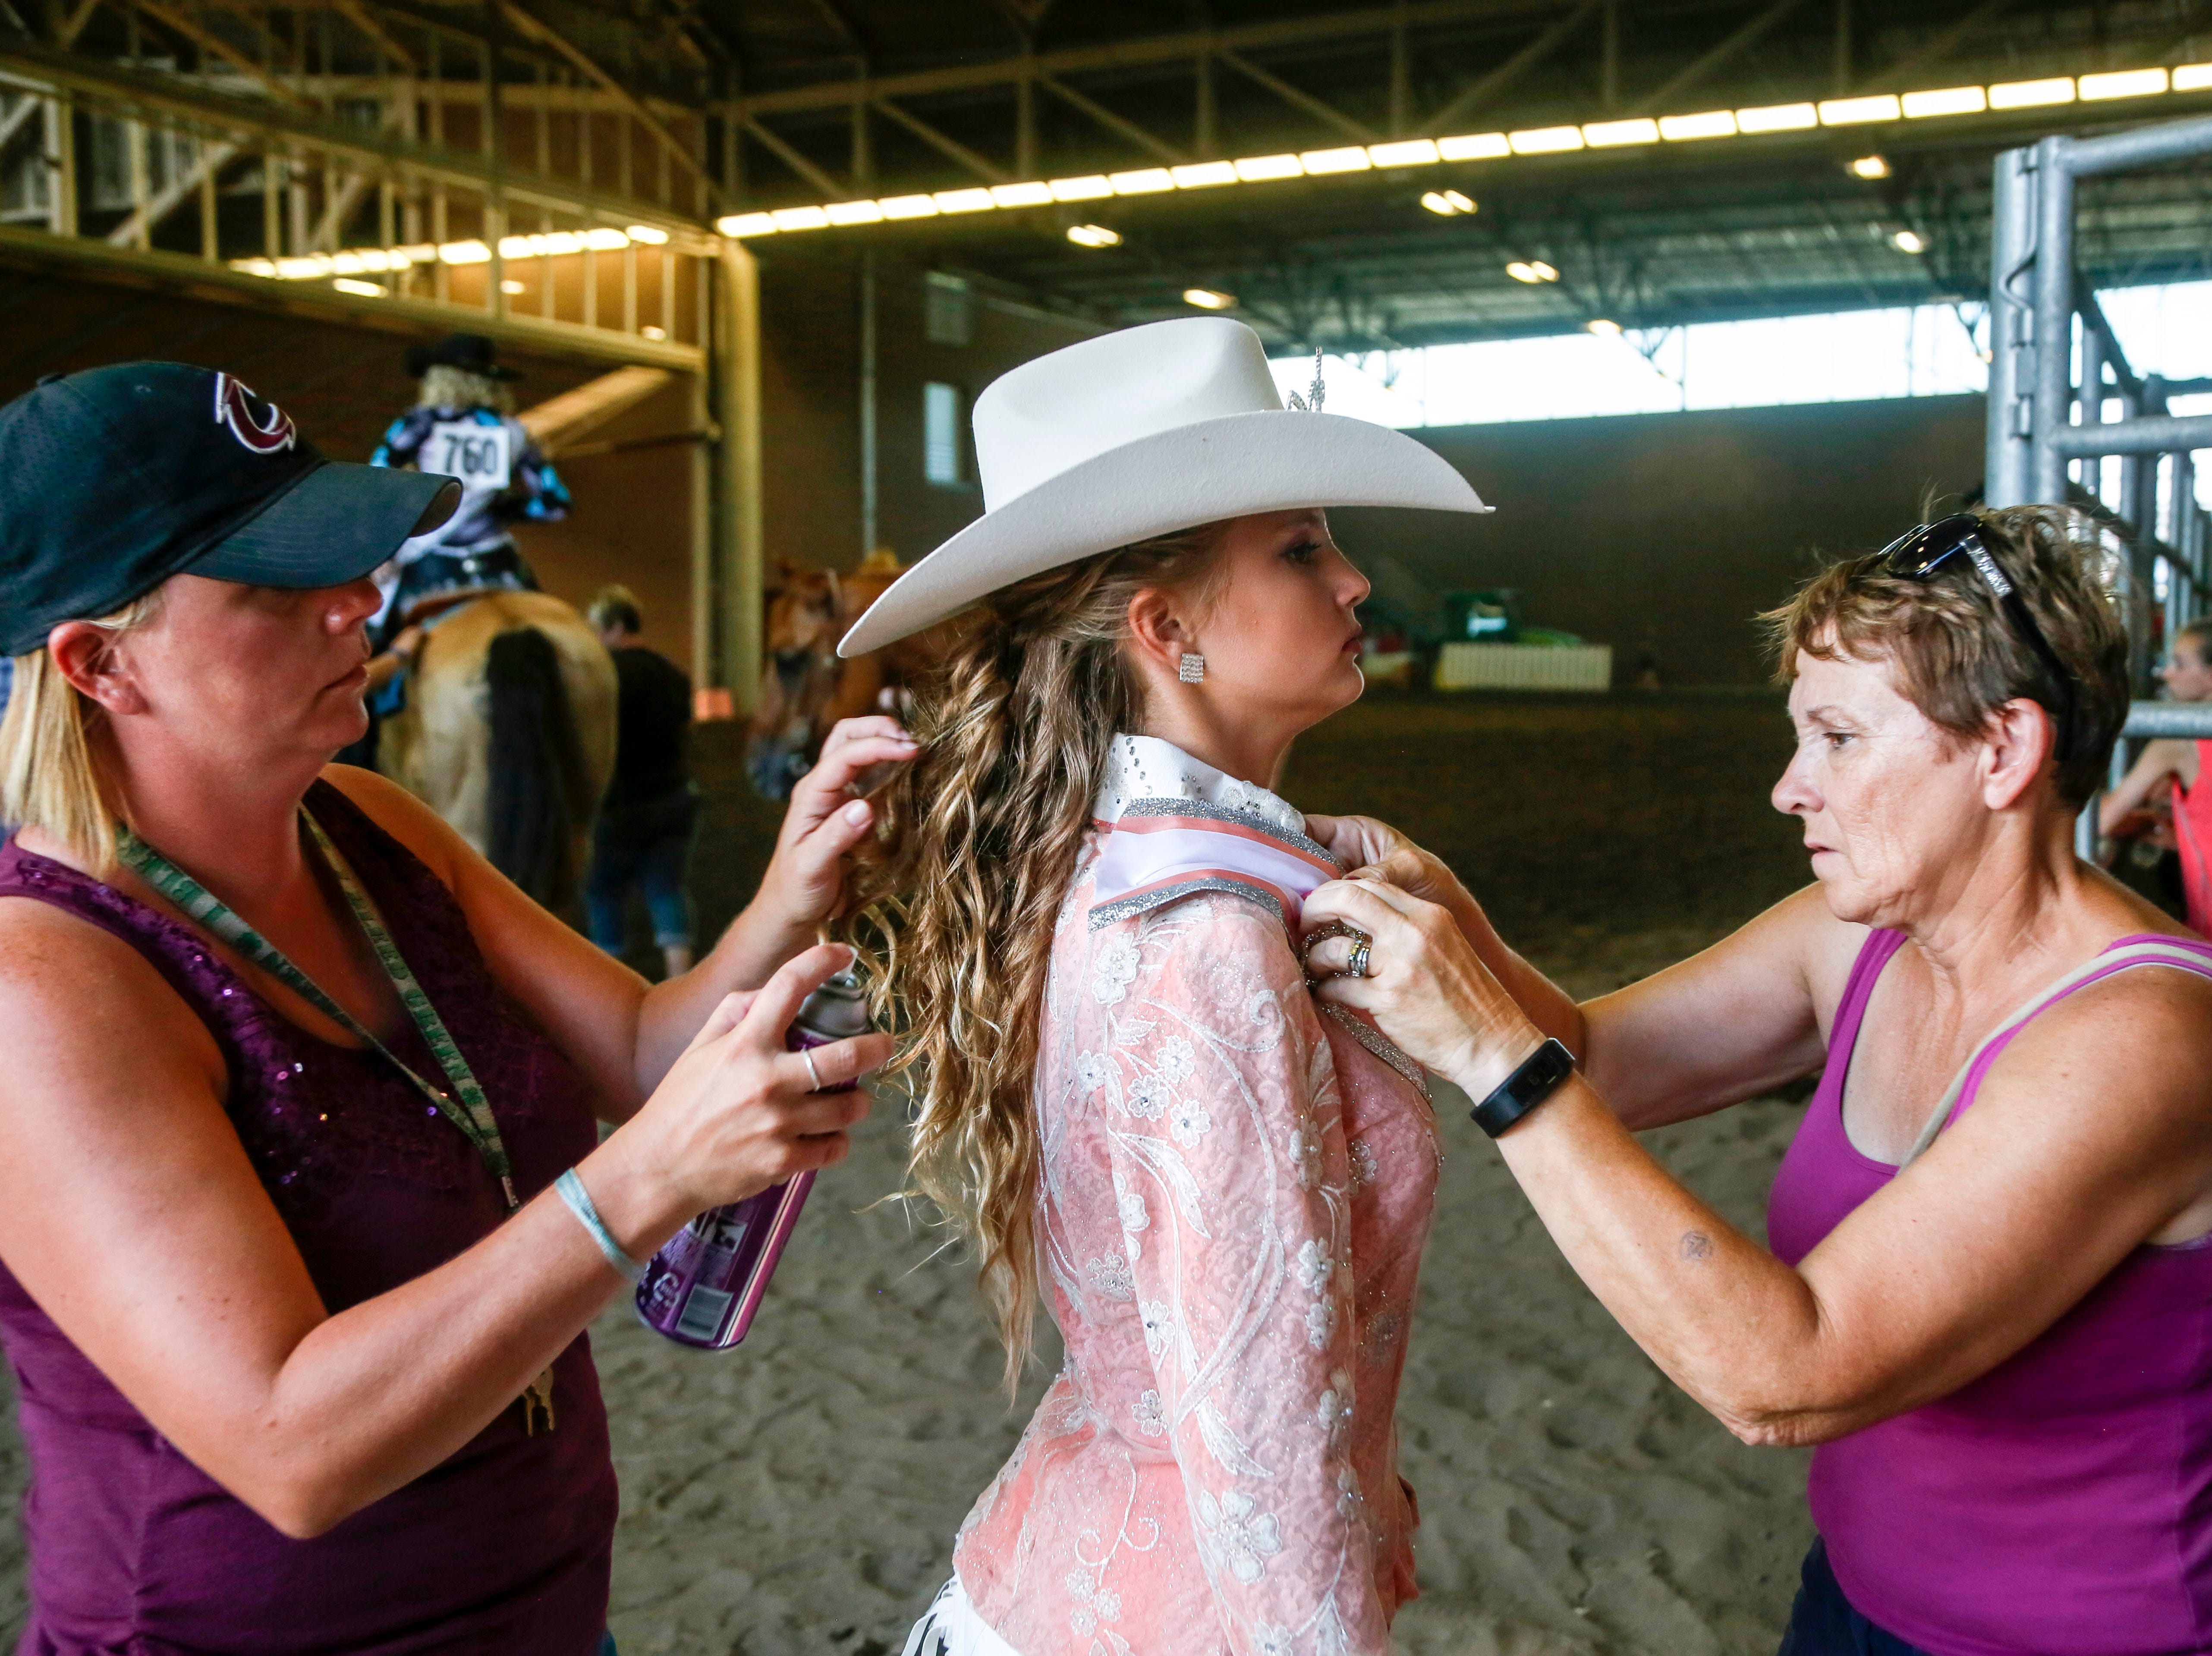 Dana Halsband, 12, of Osceola gets ready before the Cowgirl Queen Contest at the Iowa State Fair Friday, Aug. 10, 2018.